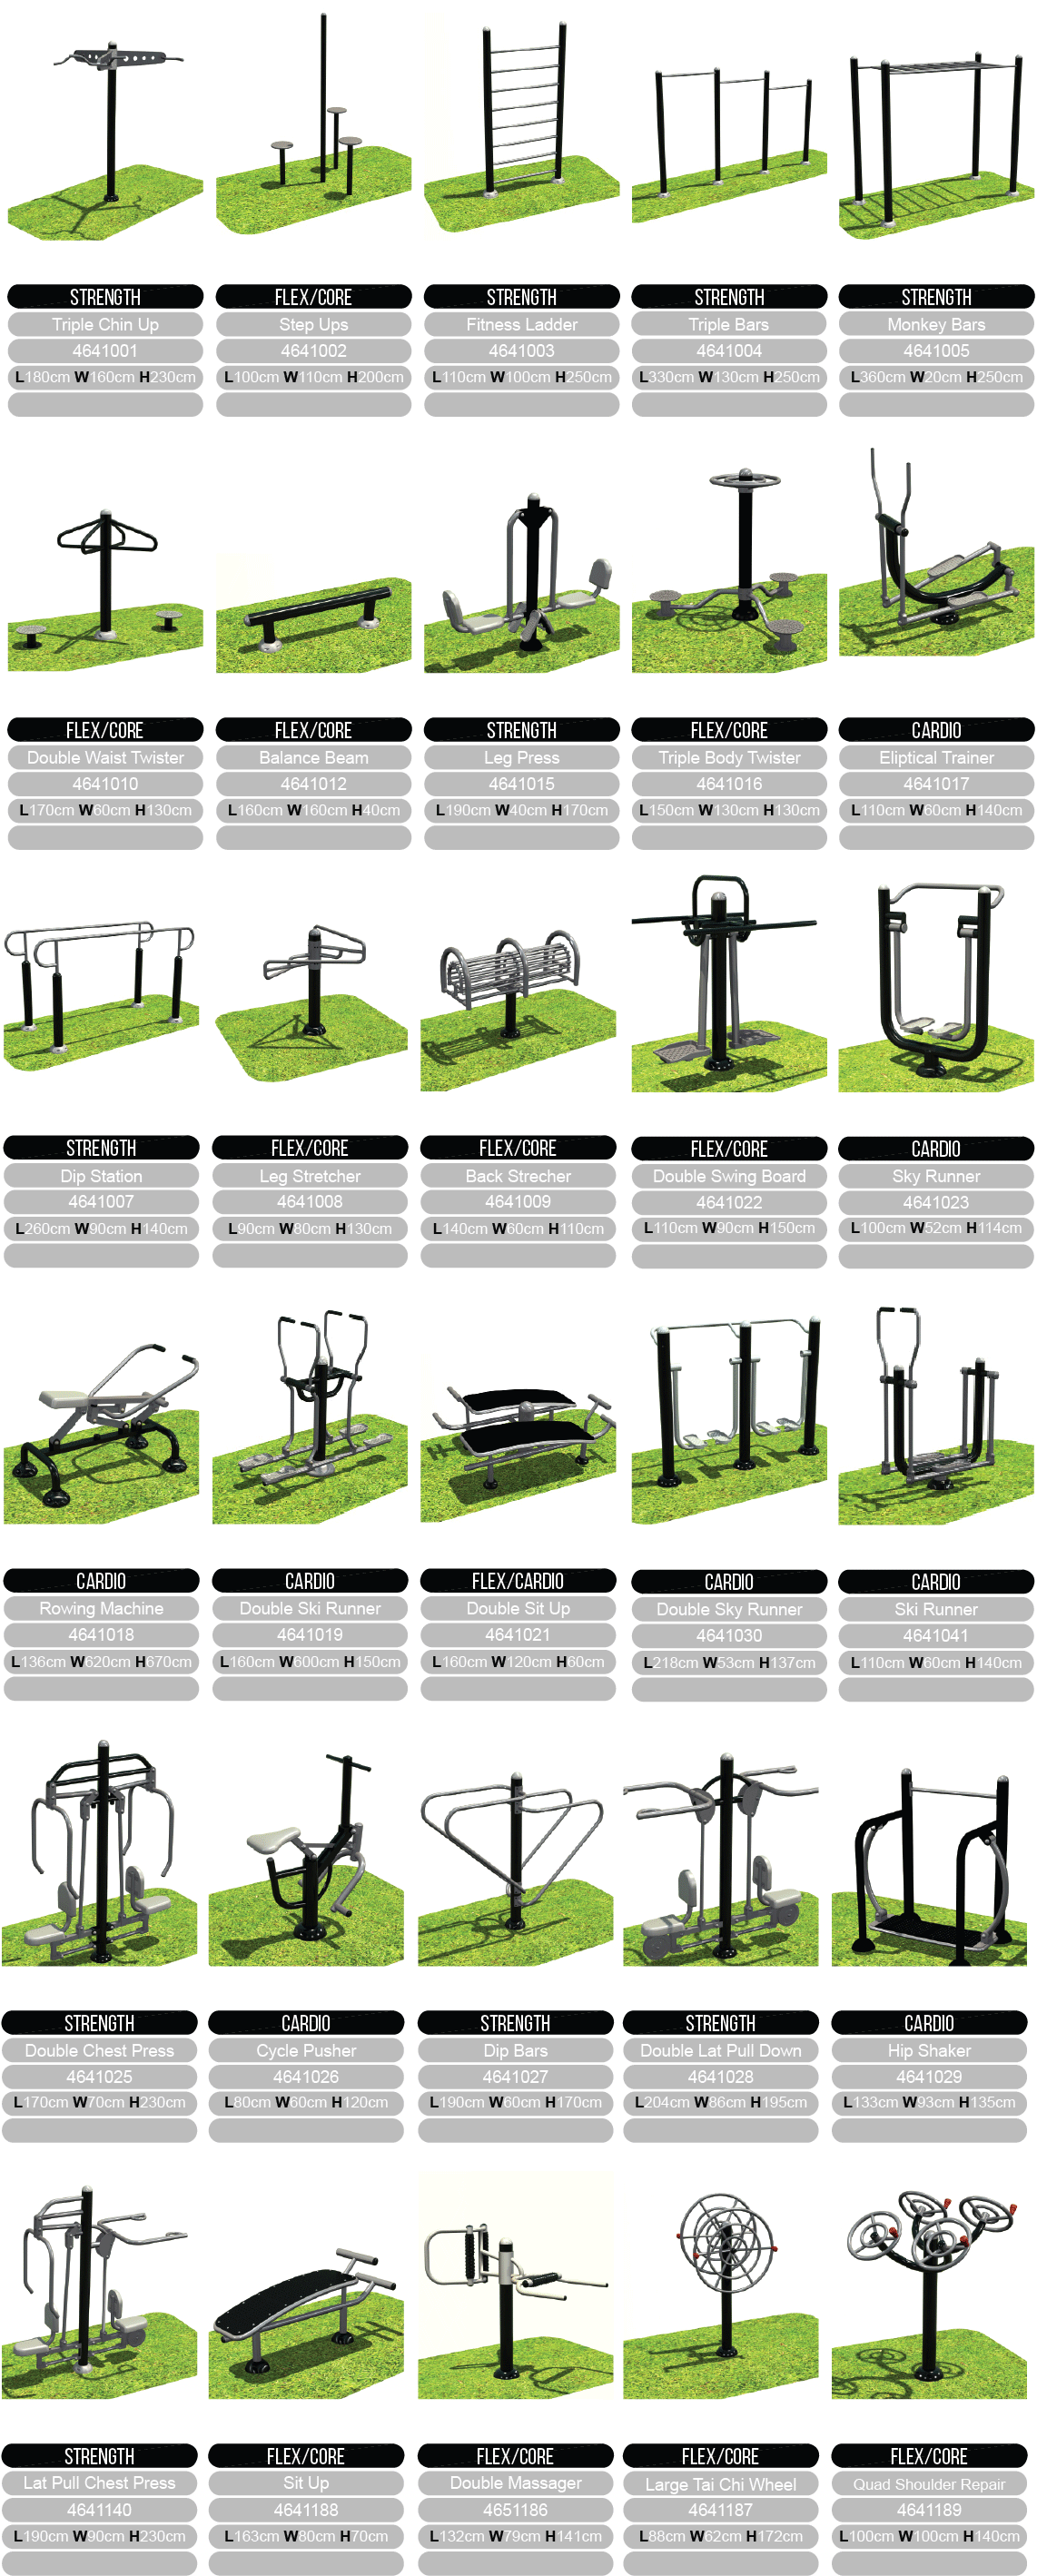 Standard fitness equipment